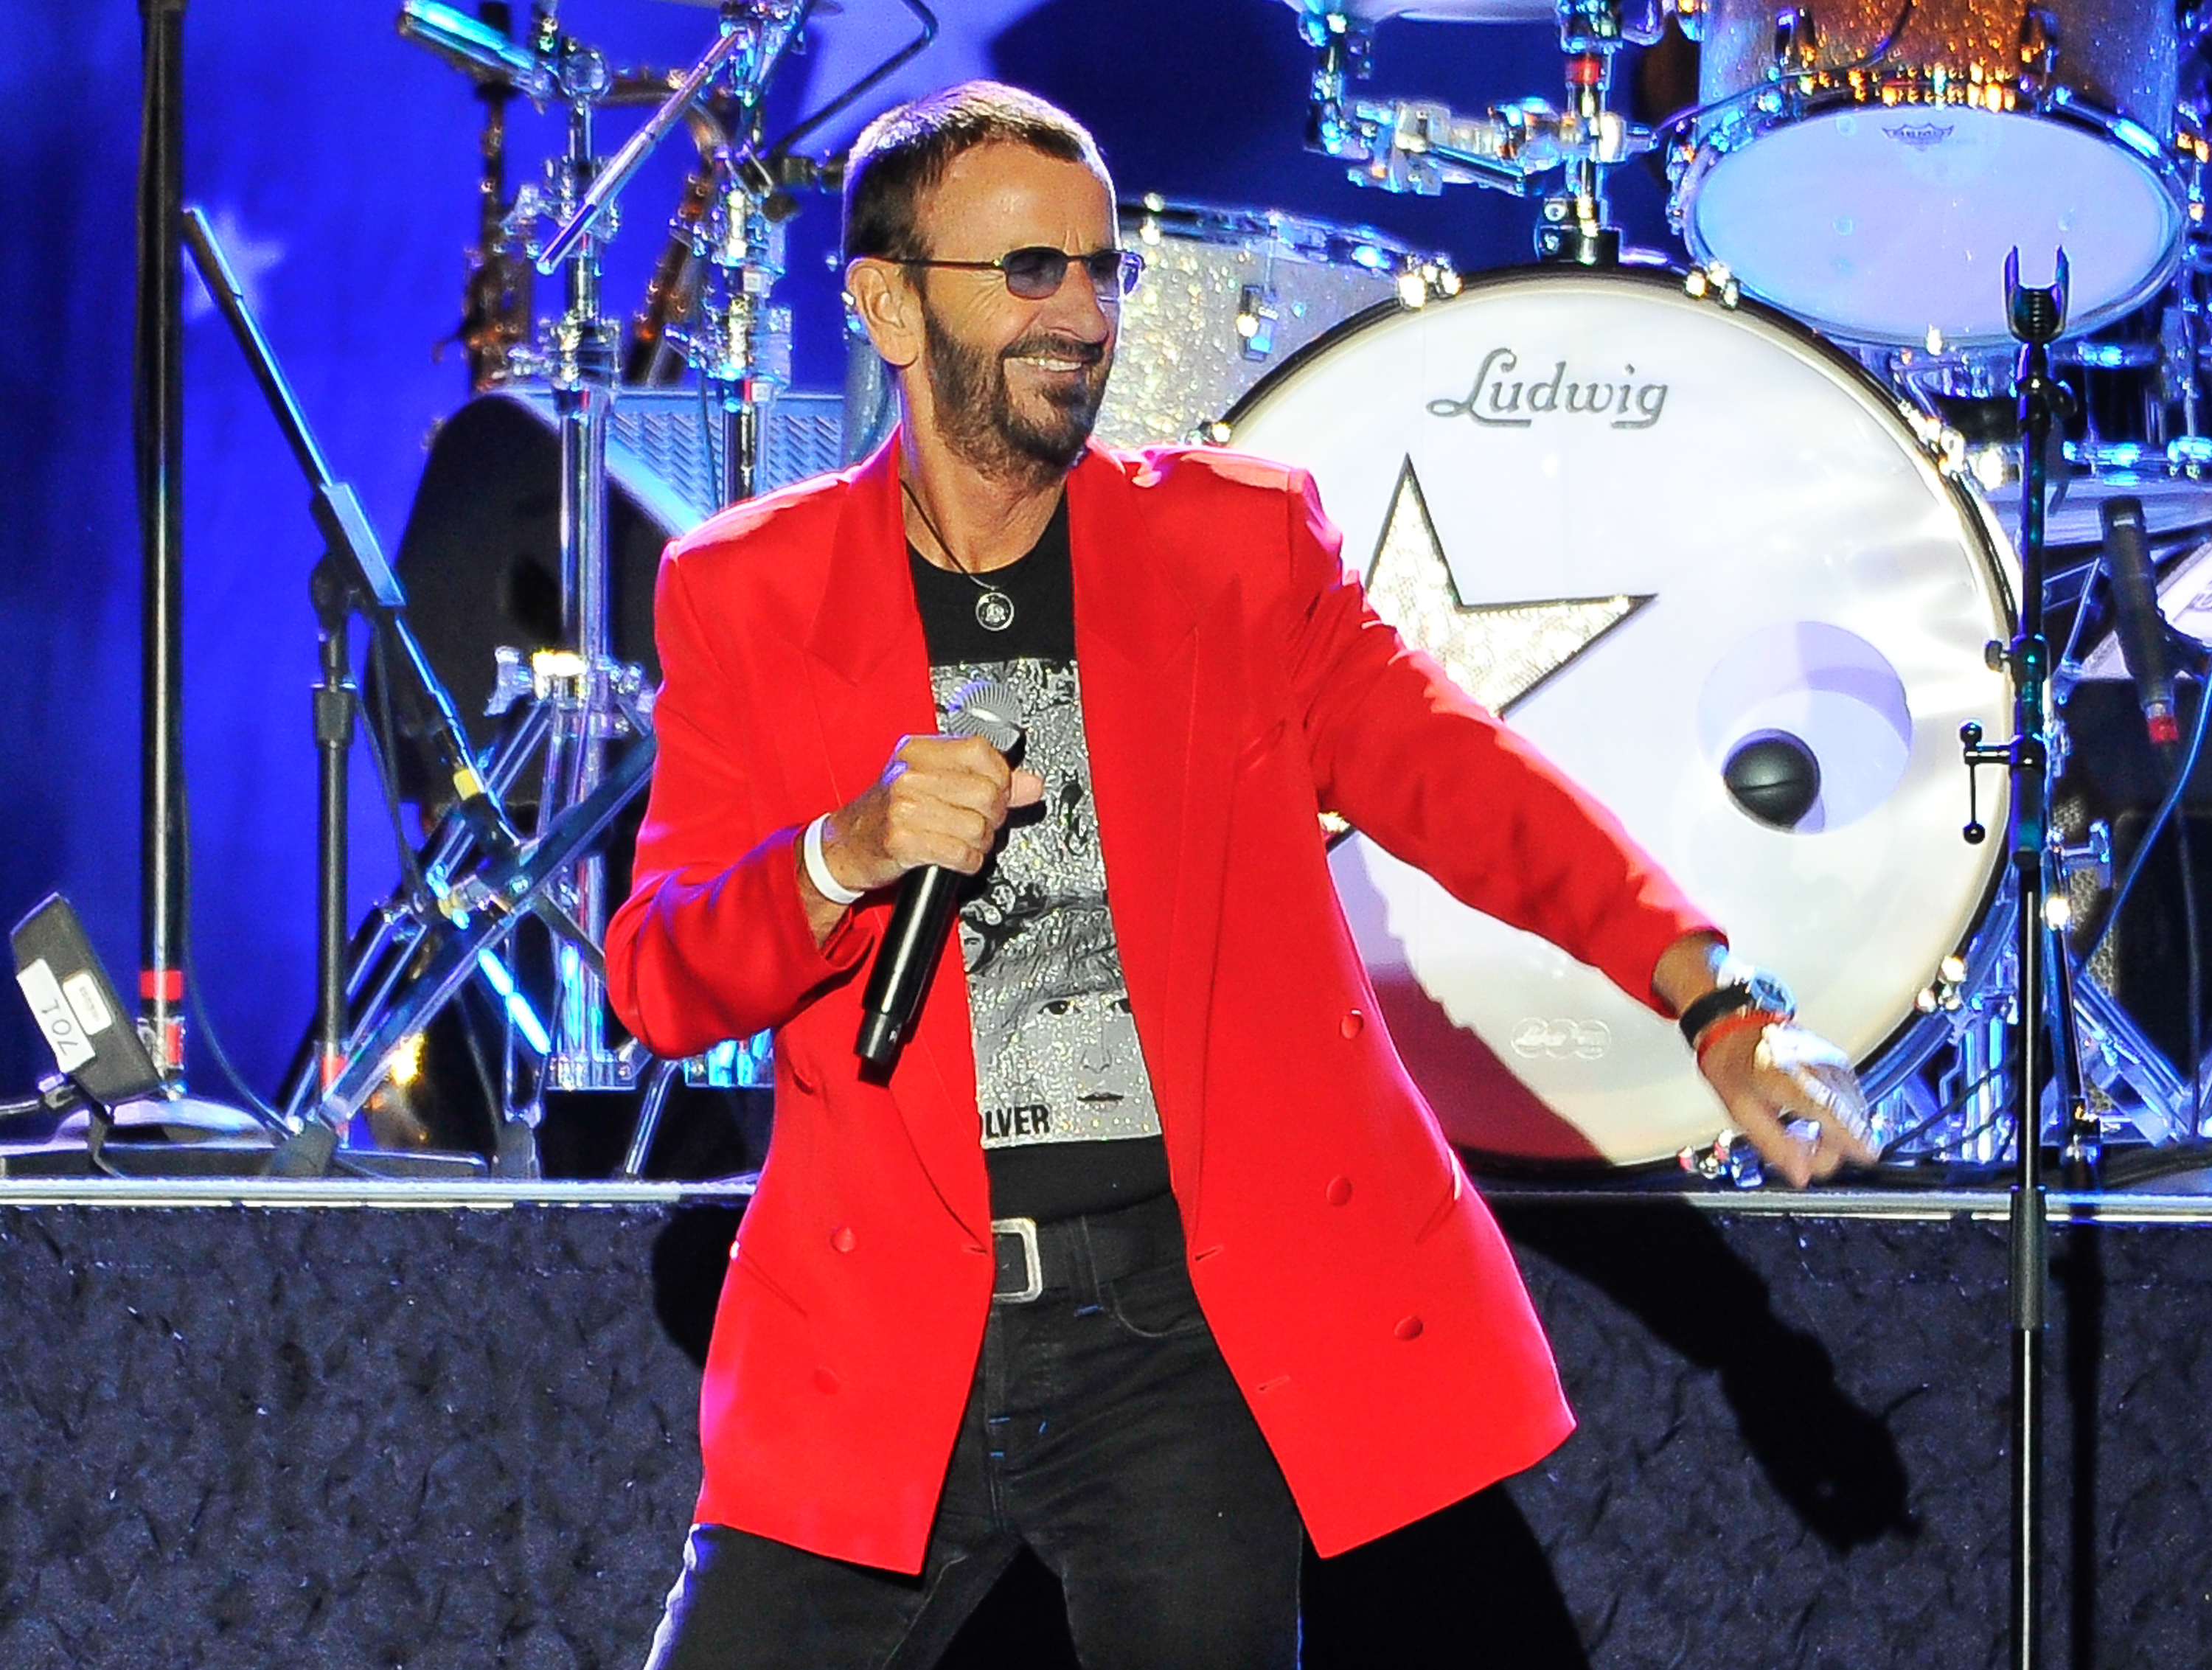 Ringo Starr quotes The Beatles as he axes show in protest of anti-trans 'bathroom' law